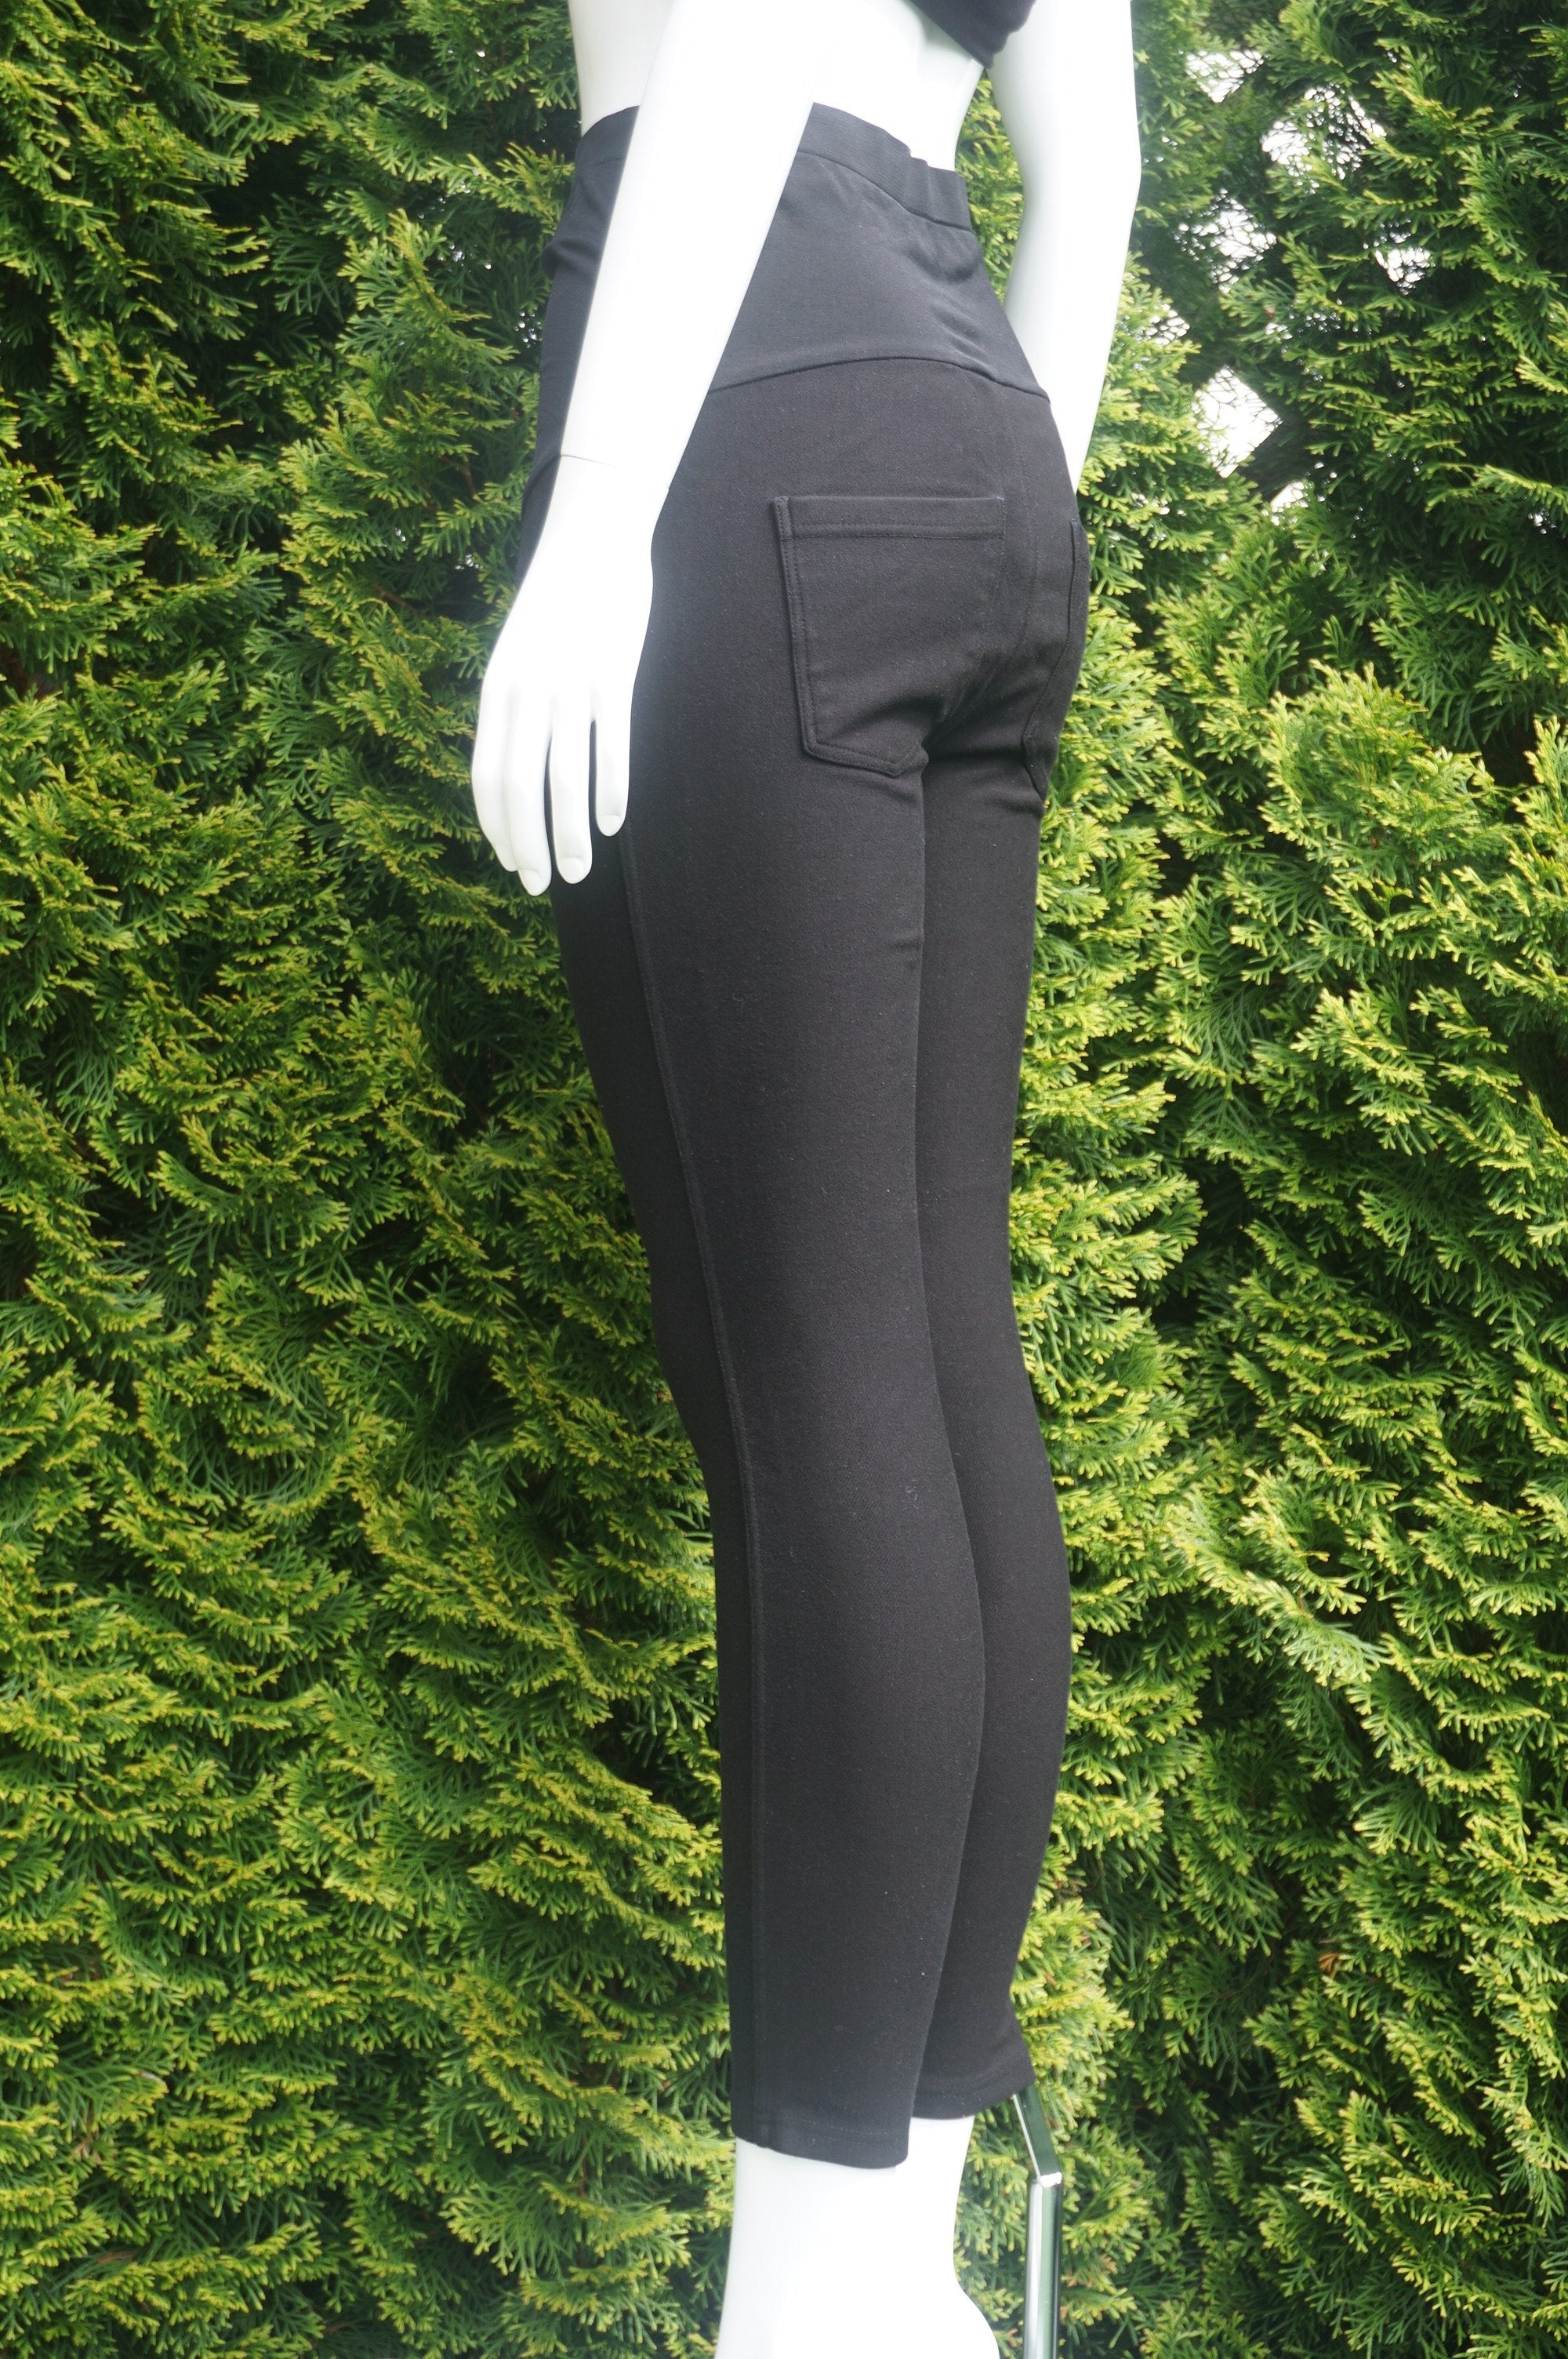 Octmami Maternity Pants, Comfortable material with clean design. Good for causal wear as well as going to the office., Black, 75.2% Viscose, 21.9% Nylon, 2.9% Spandex, women's Mom & Baby, women's Black Mom & Baby, Octmami women's Mom & Baby, maternity pants, pregnency pants, maternity work pants